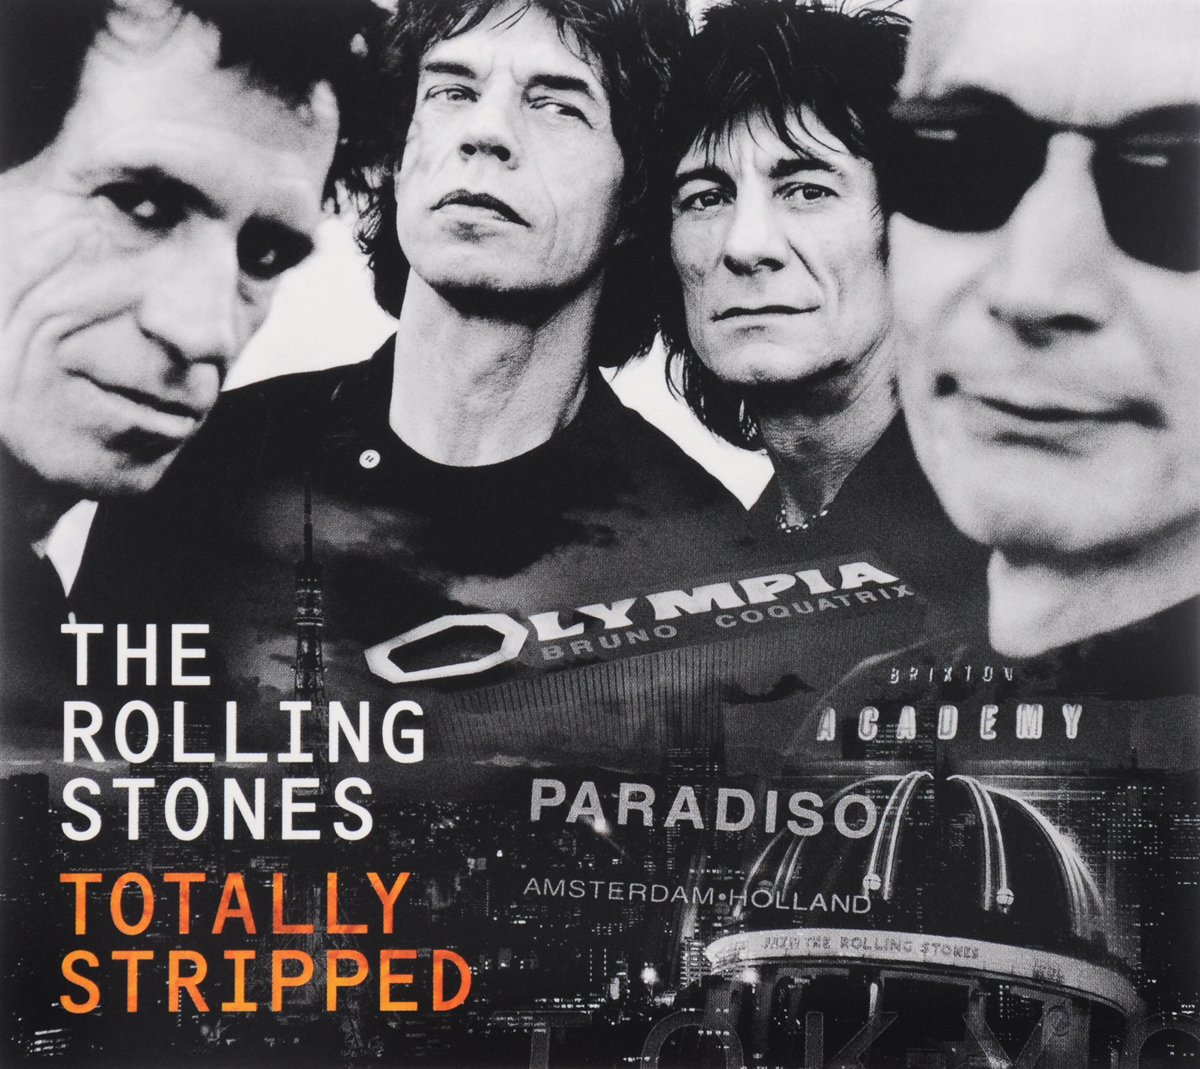 The Rolling Stones Rolling Stones. The Totally Stripped (CD + DVD) музыка cd dvd audio